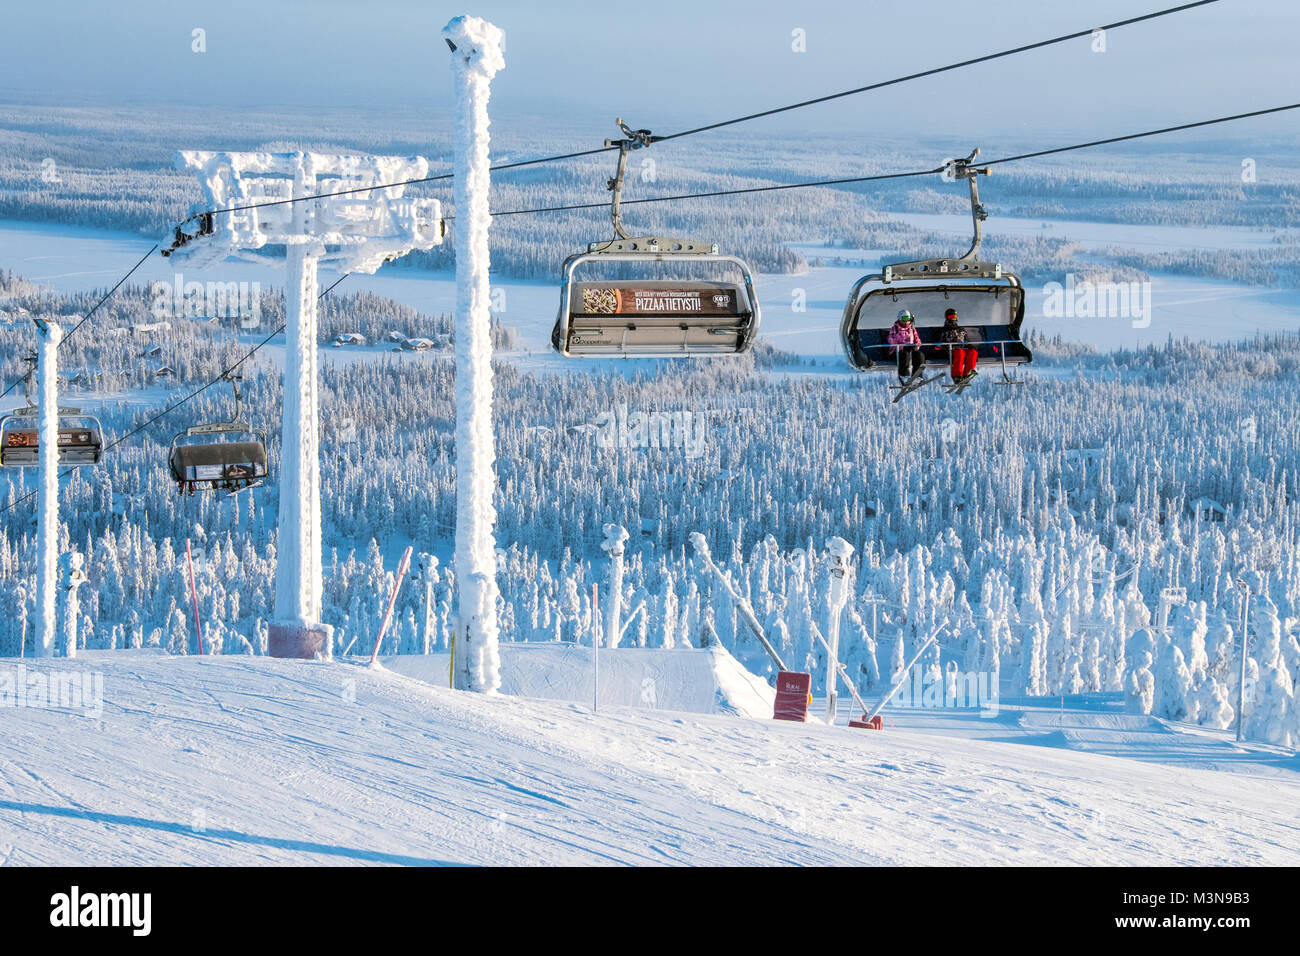 Chairlifts at The ski resort of Ruka in Finland - Stock Image